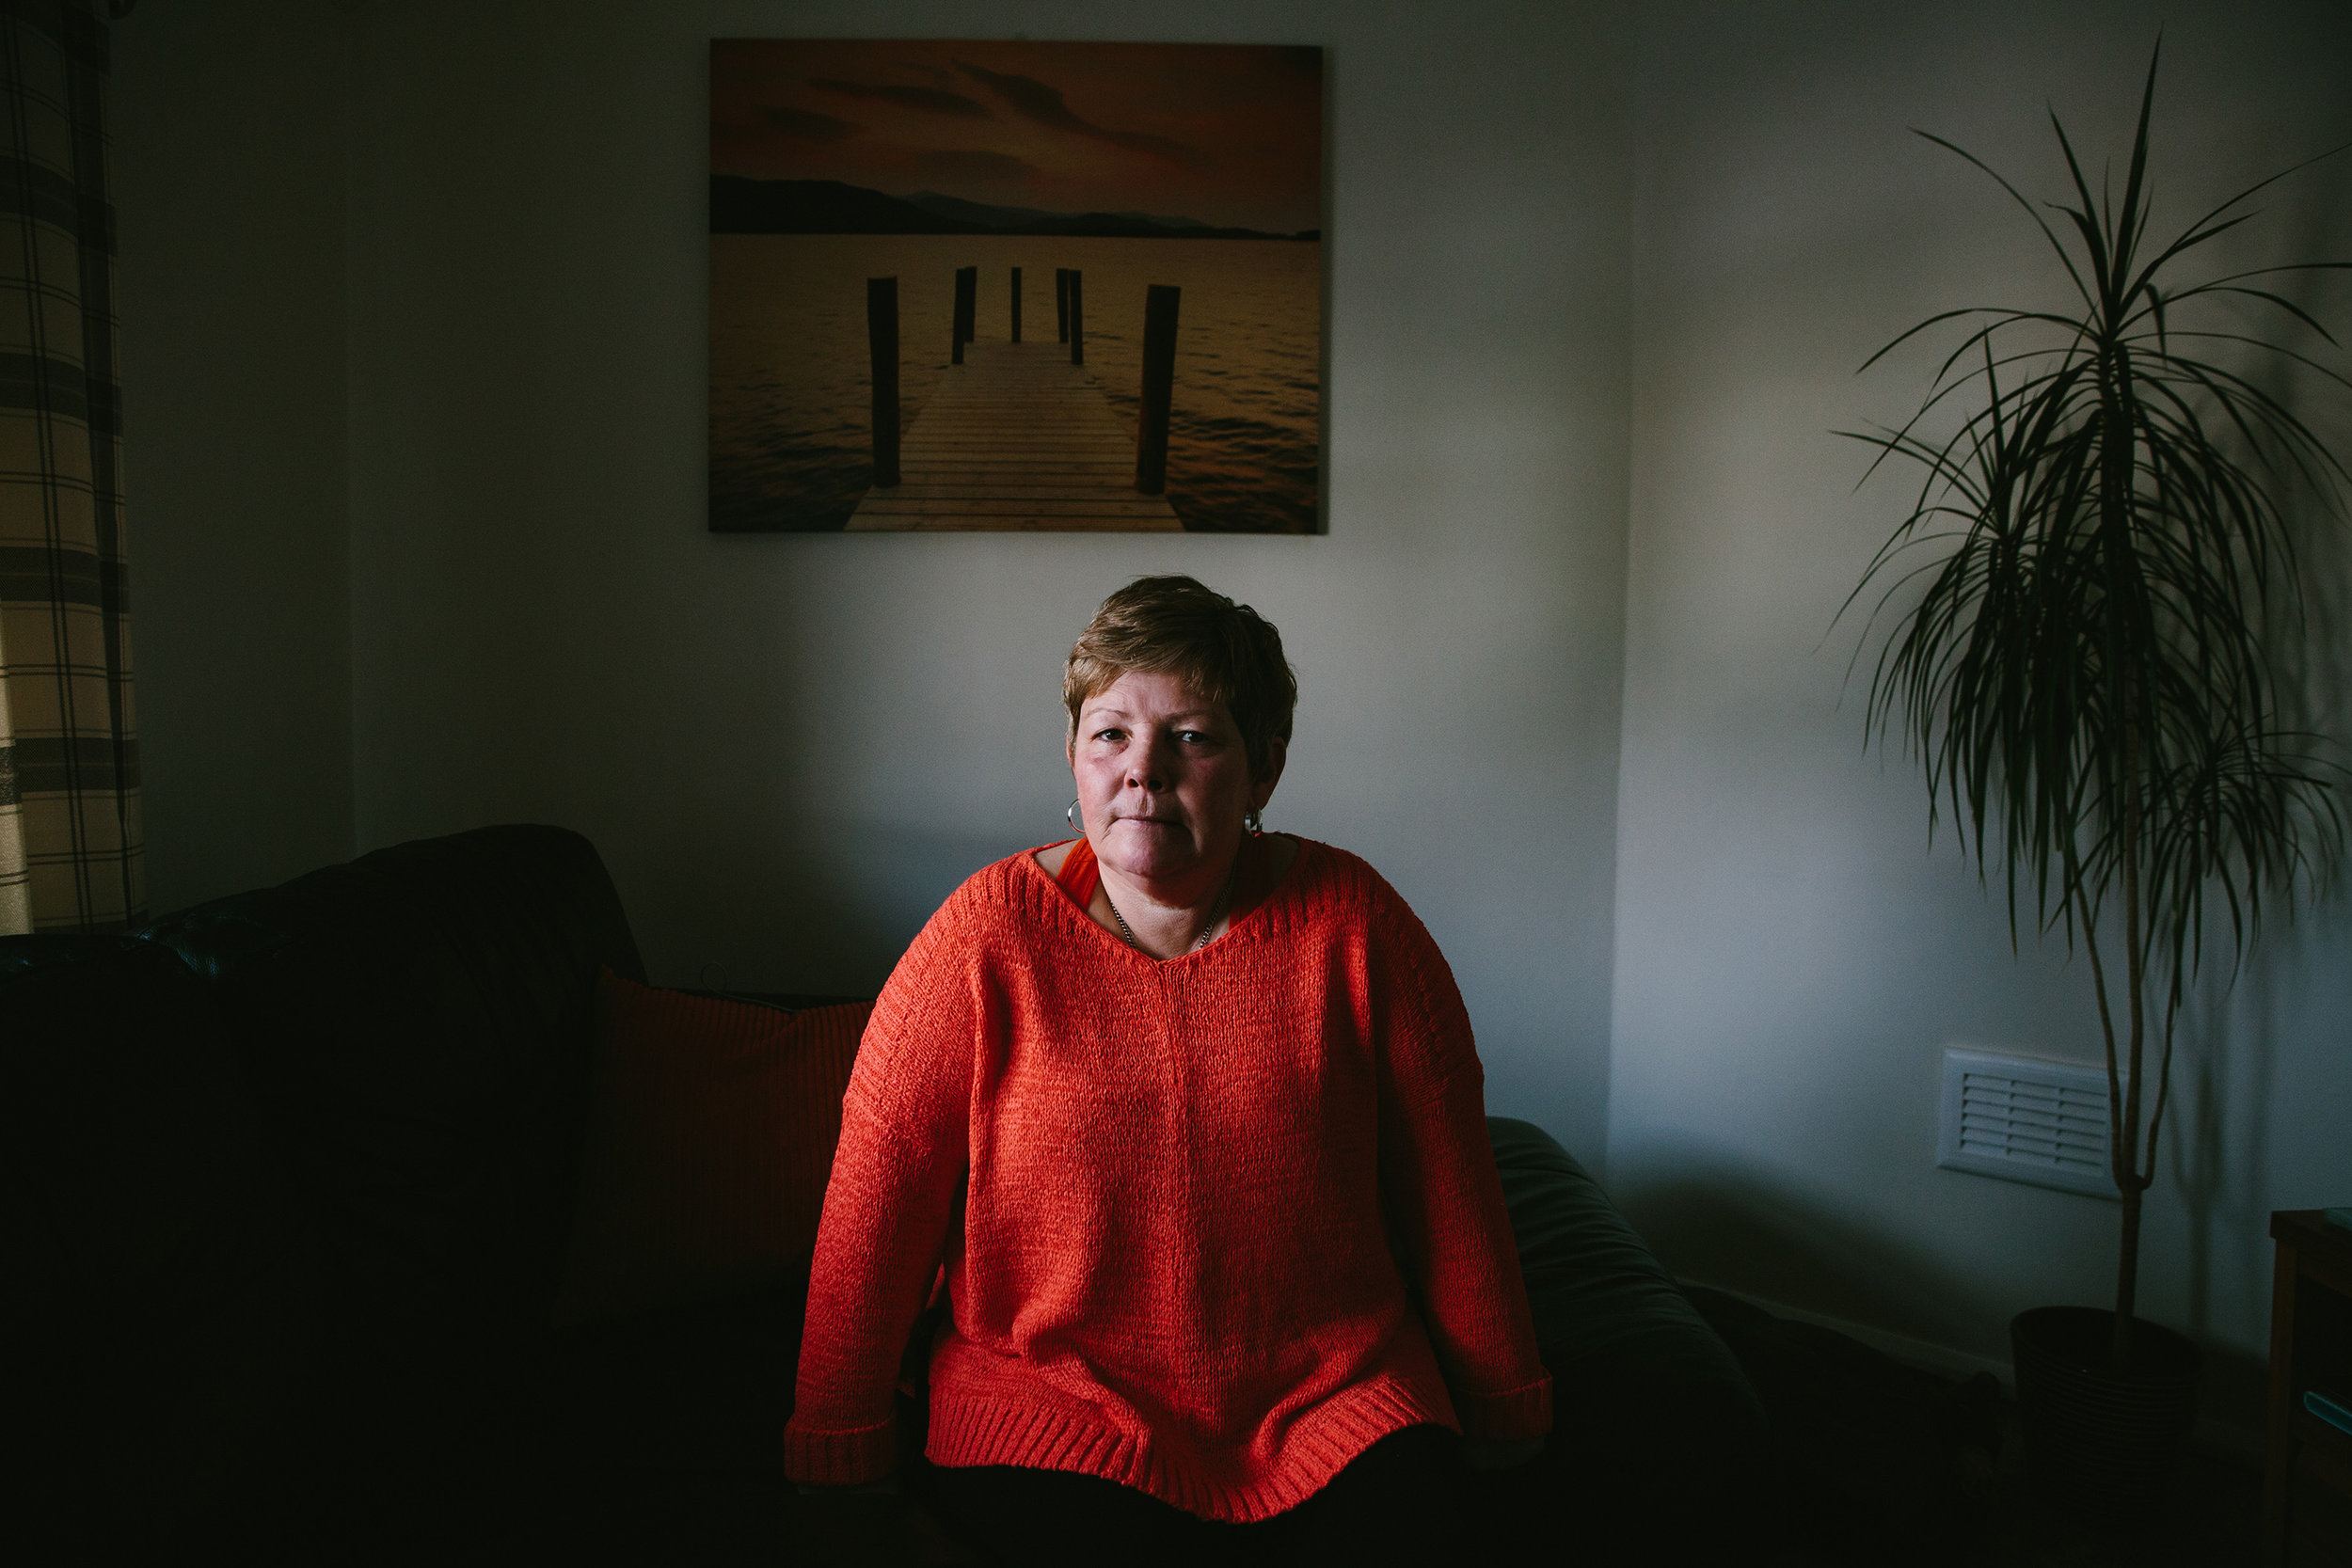 Gill Hedley, from Newcastle, had mesh fitted in a procedure called a rectopexy following a bowel prolapse. She says the side-effects she suffered as a result have left her unable to work. She was forced to give up her house